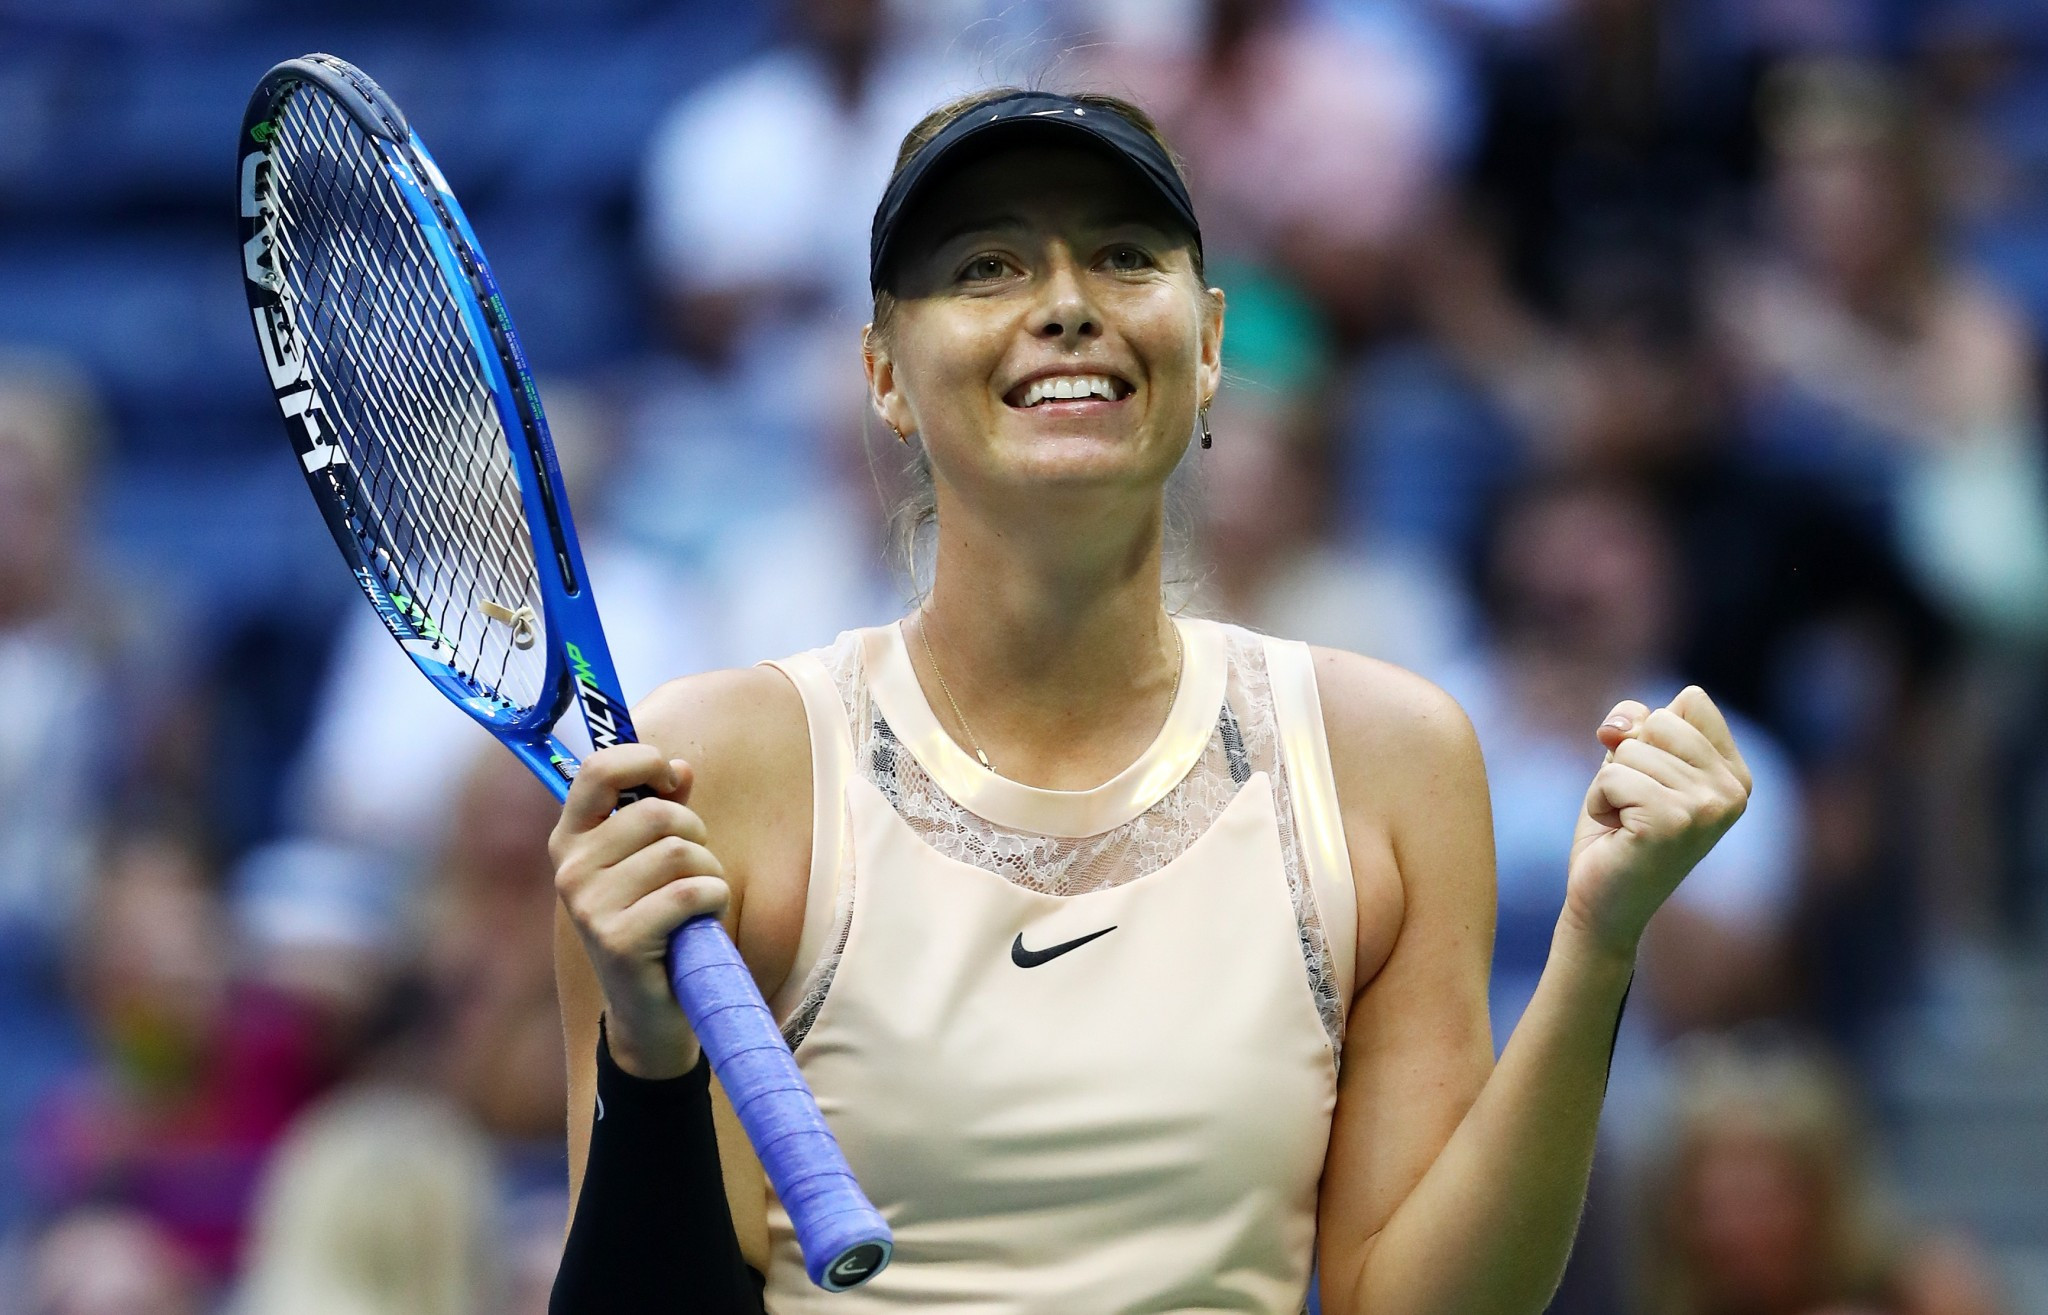 Maria Sharapova continued her good form at the US Open ©Getty Images